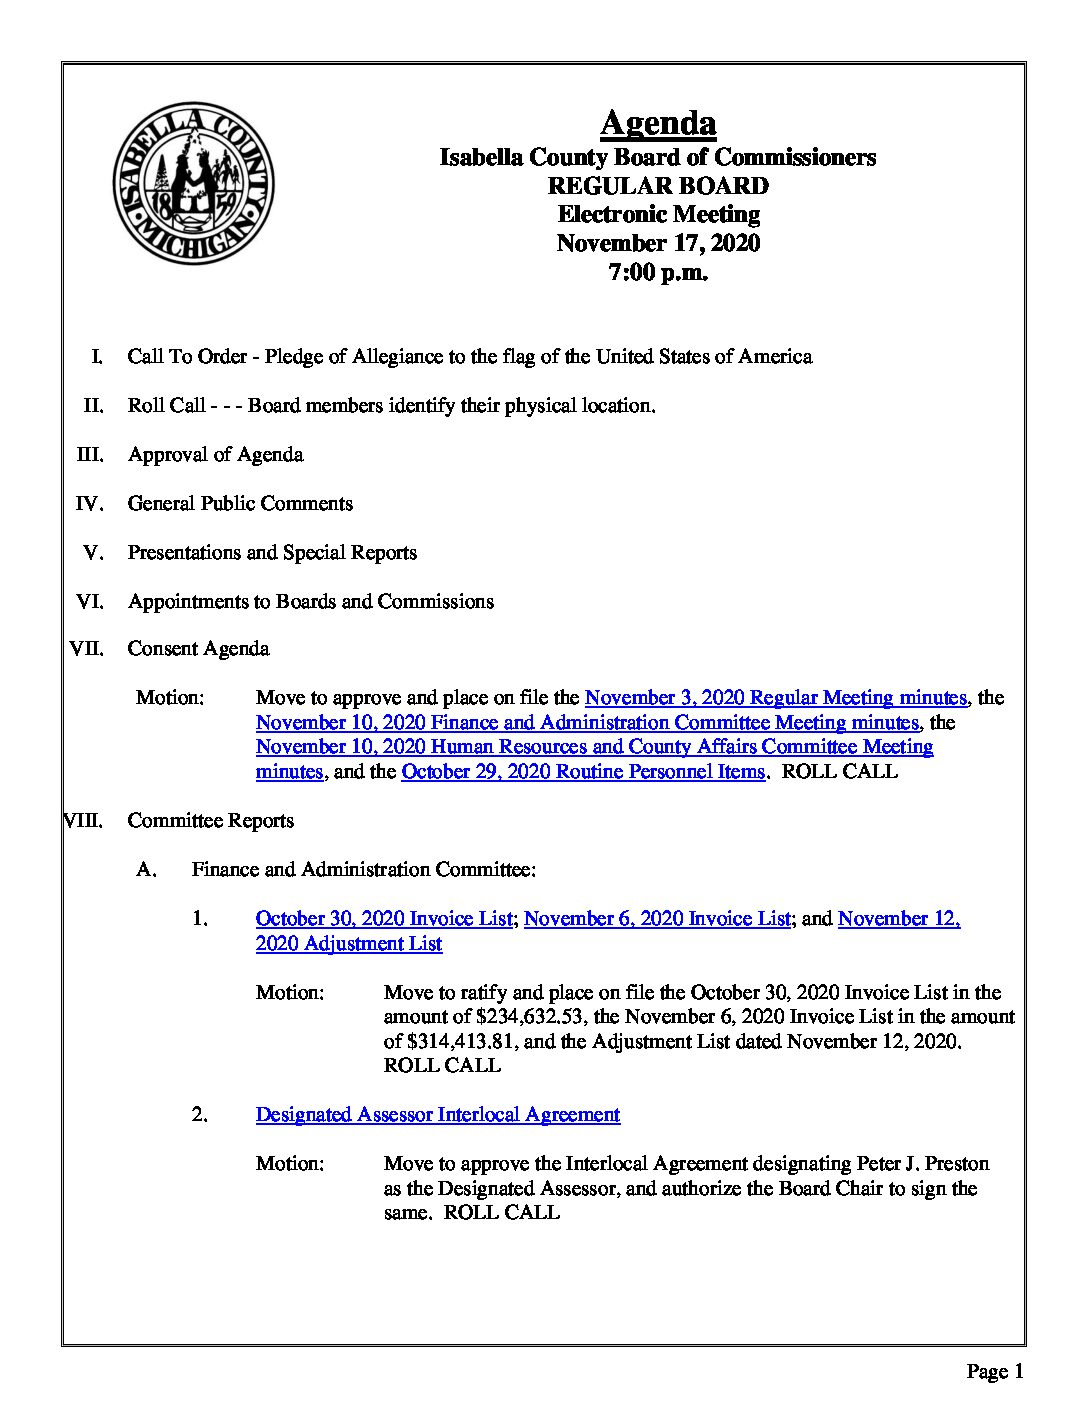 preview image of first page November 17, 2020 Agenda